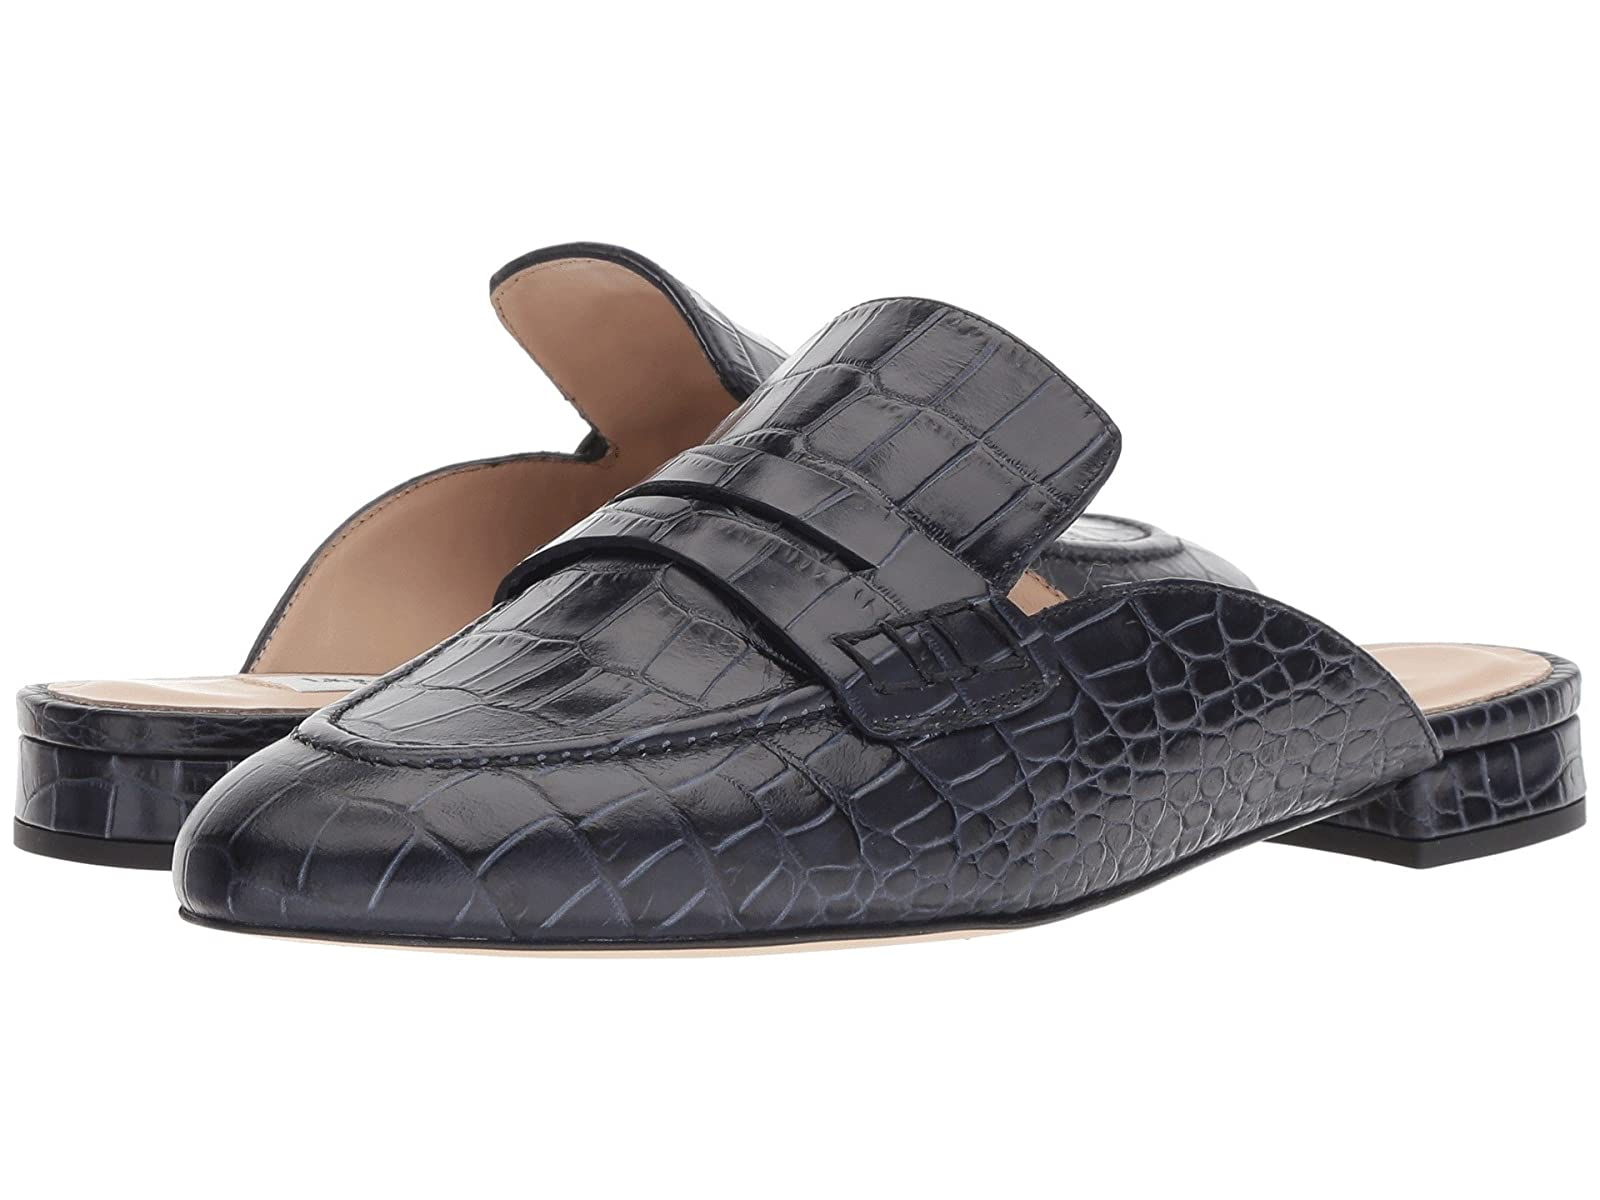 L.K. Bennett IlianaAtmospheric grades have affordable shoes